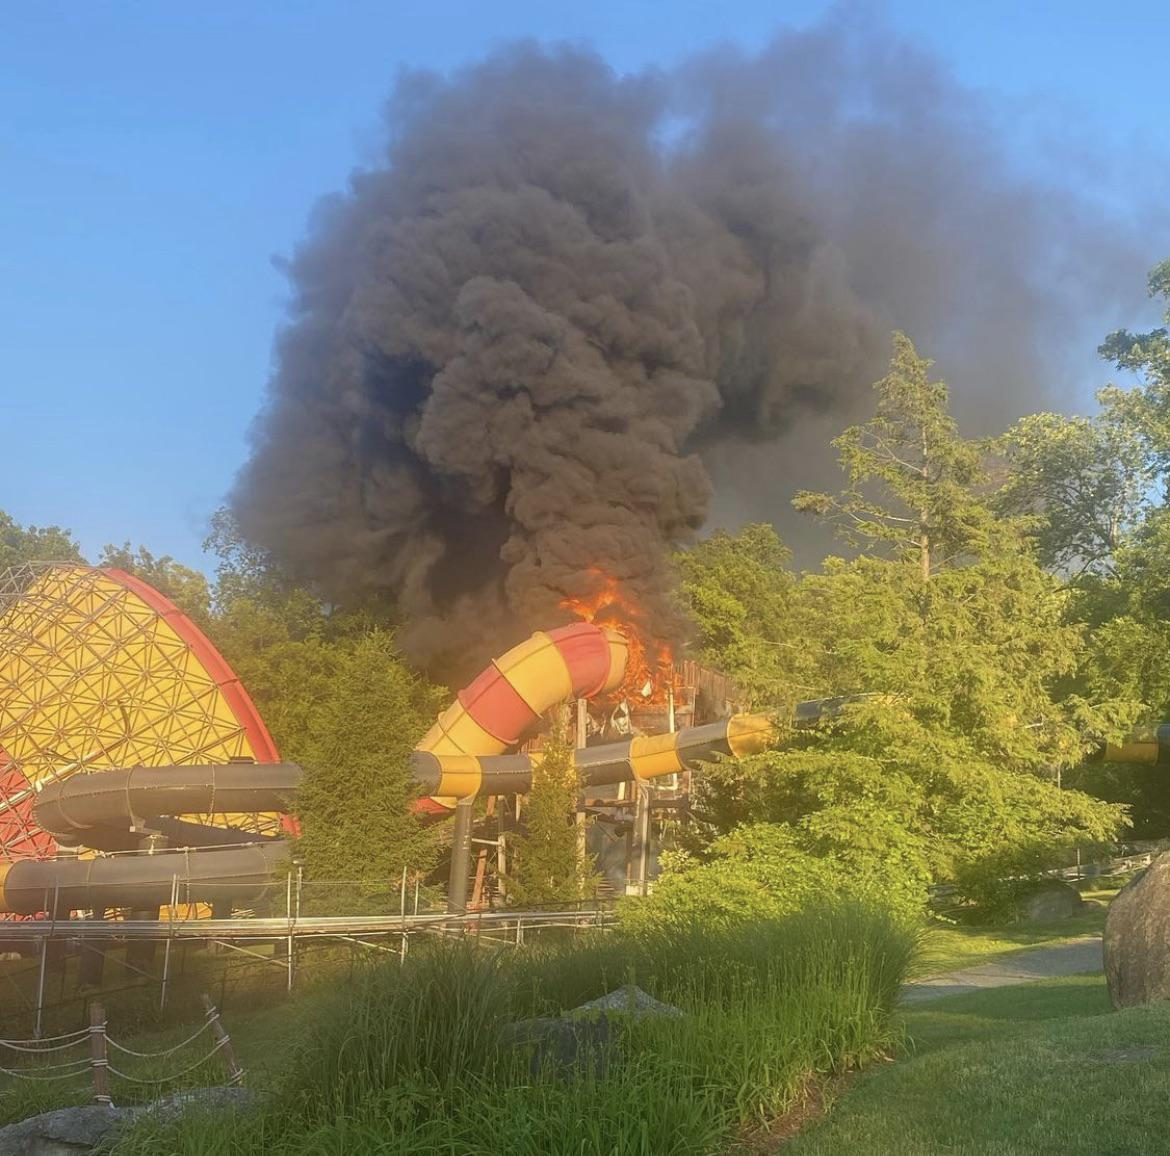 Remember Action Park? Their water slide just caught on fire